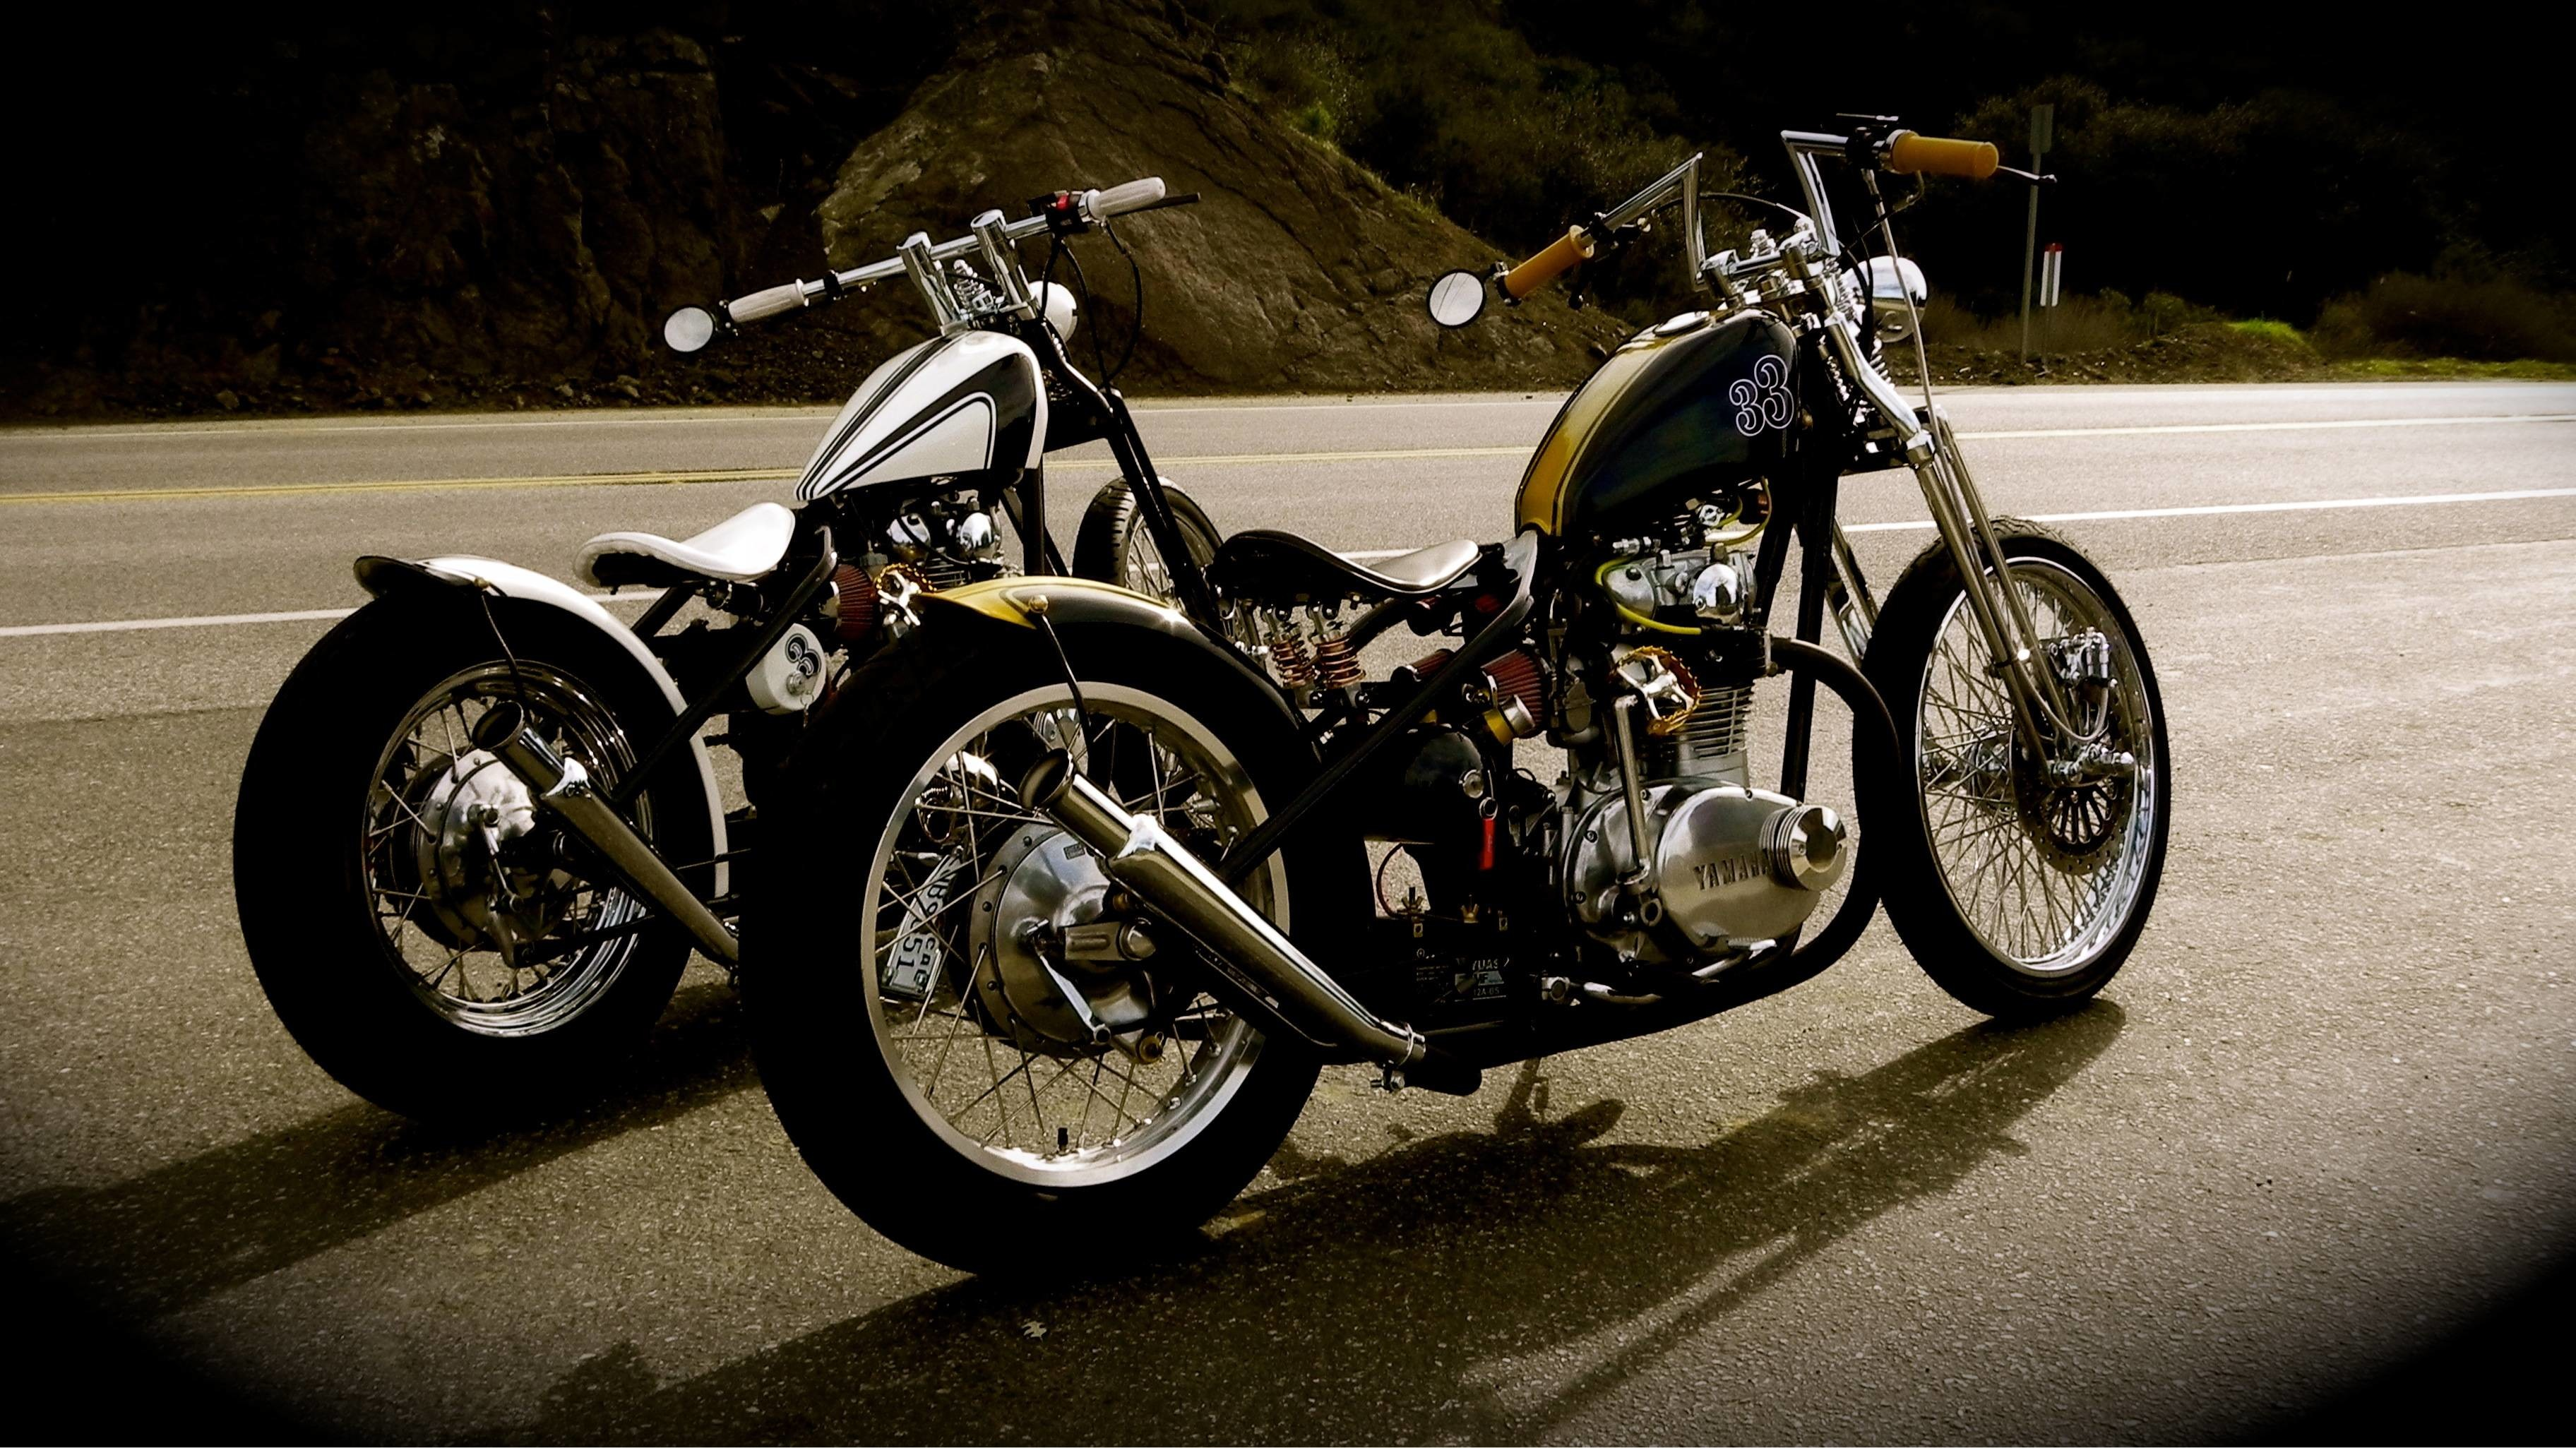 3648x2051 Pix For > Bobber Motorcycle Wallpaper